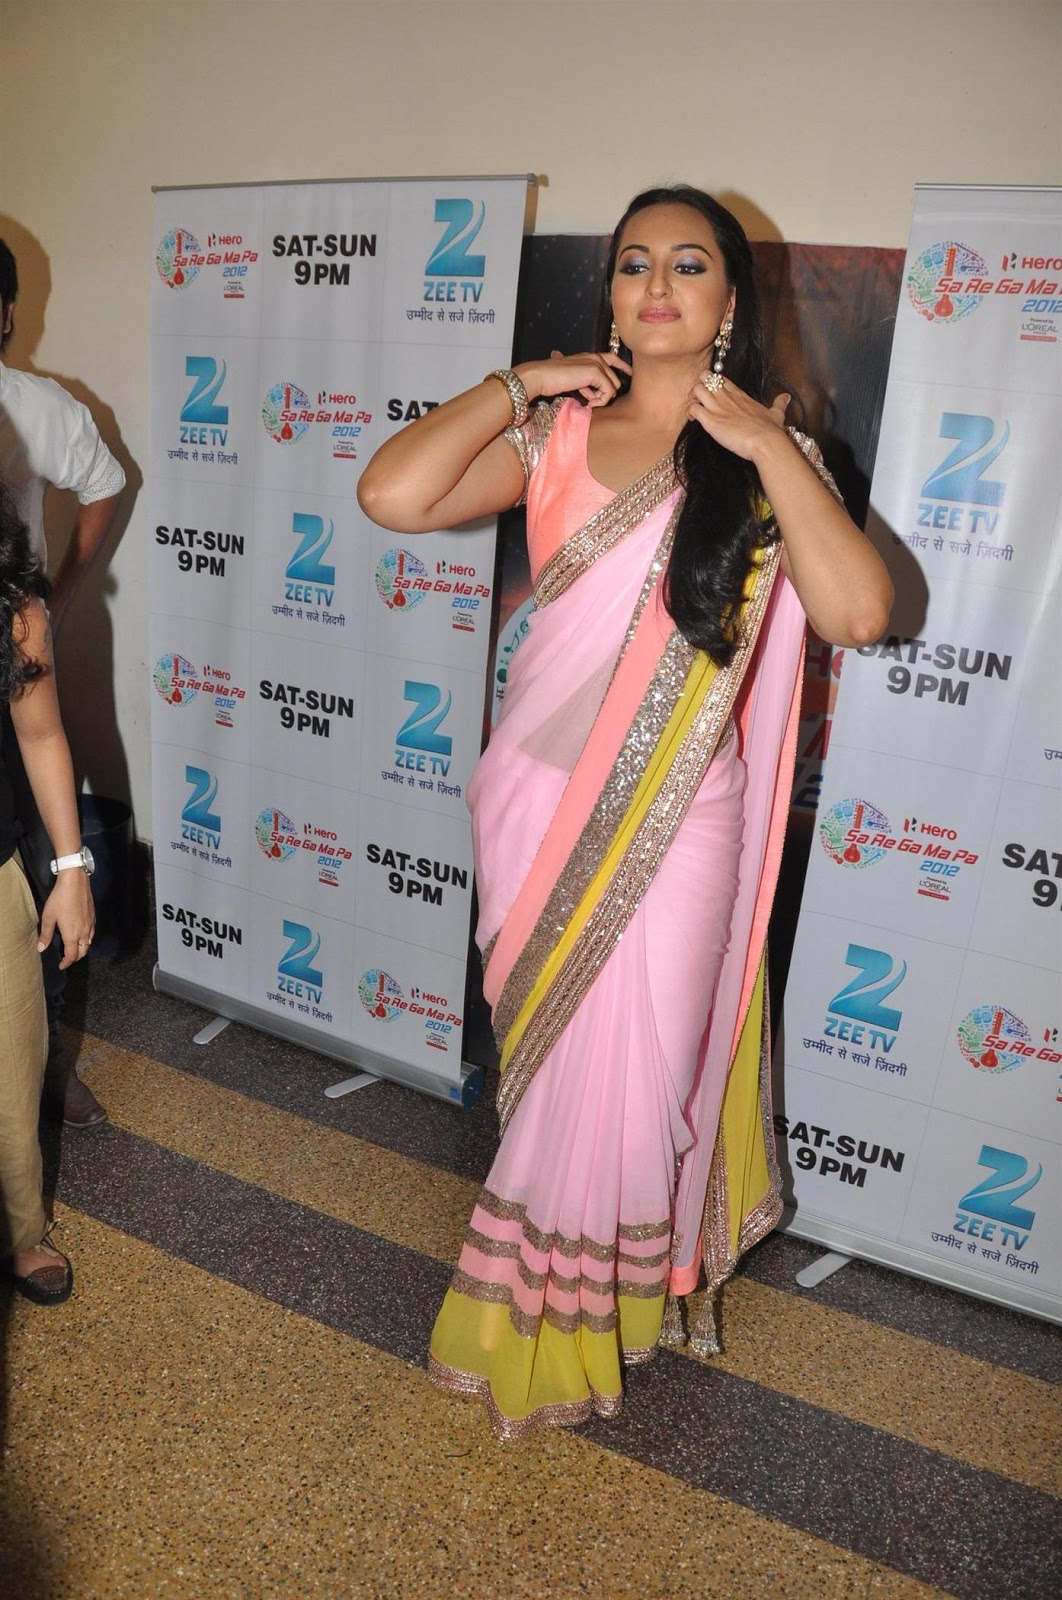 Cute sonakshi in pink saree